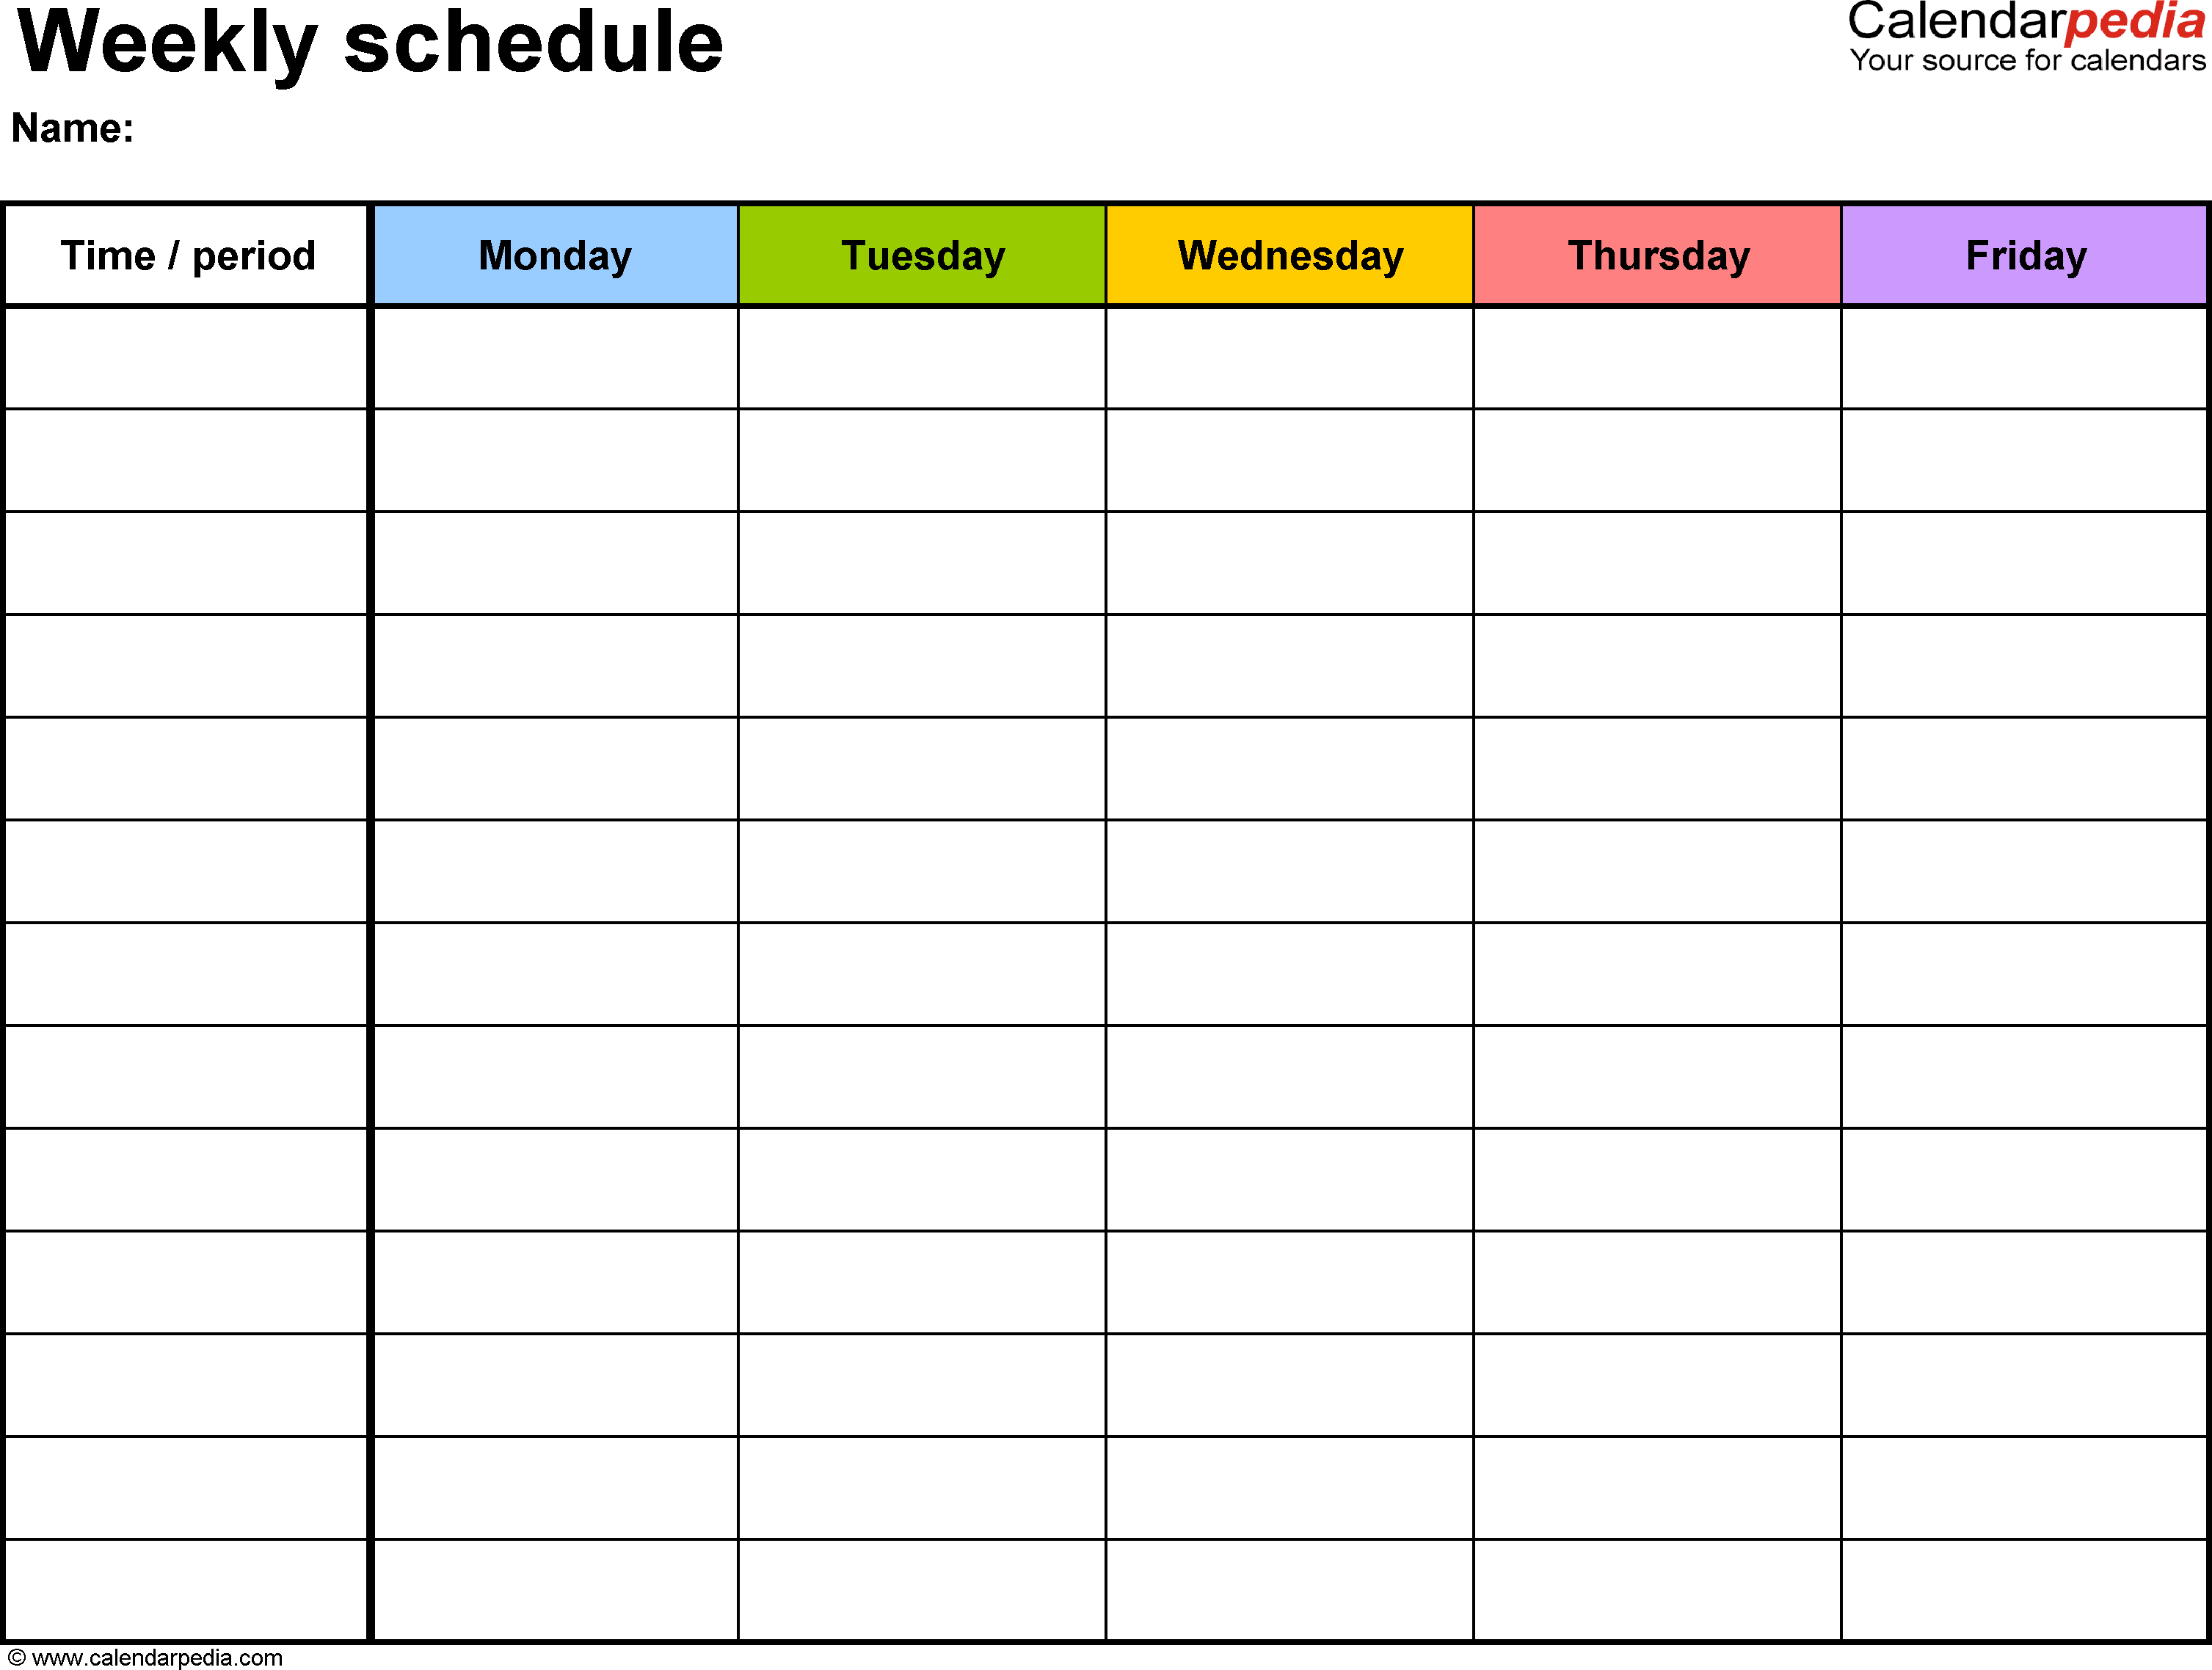 Free Weekly Schedule Templates For Word - 18 Templates throughout Cute Class Schedule Template 8 Class